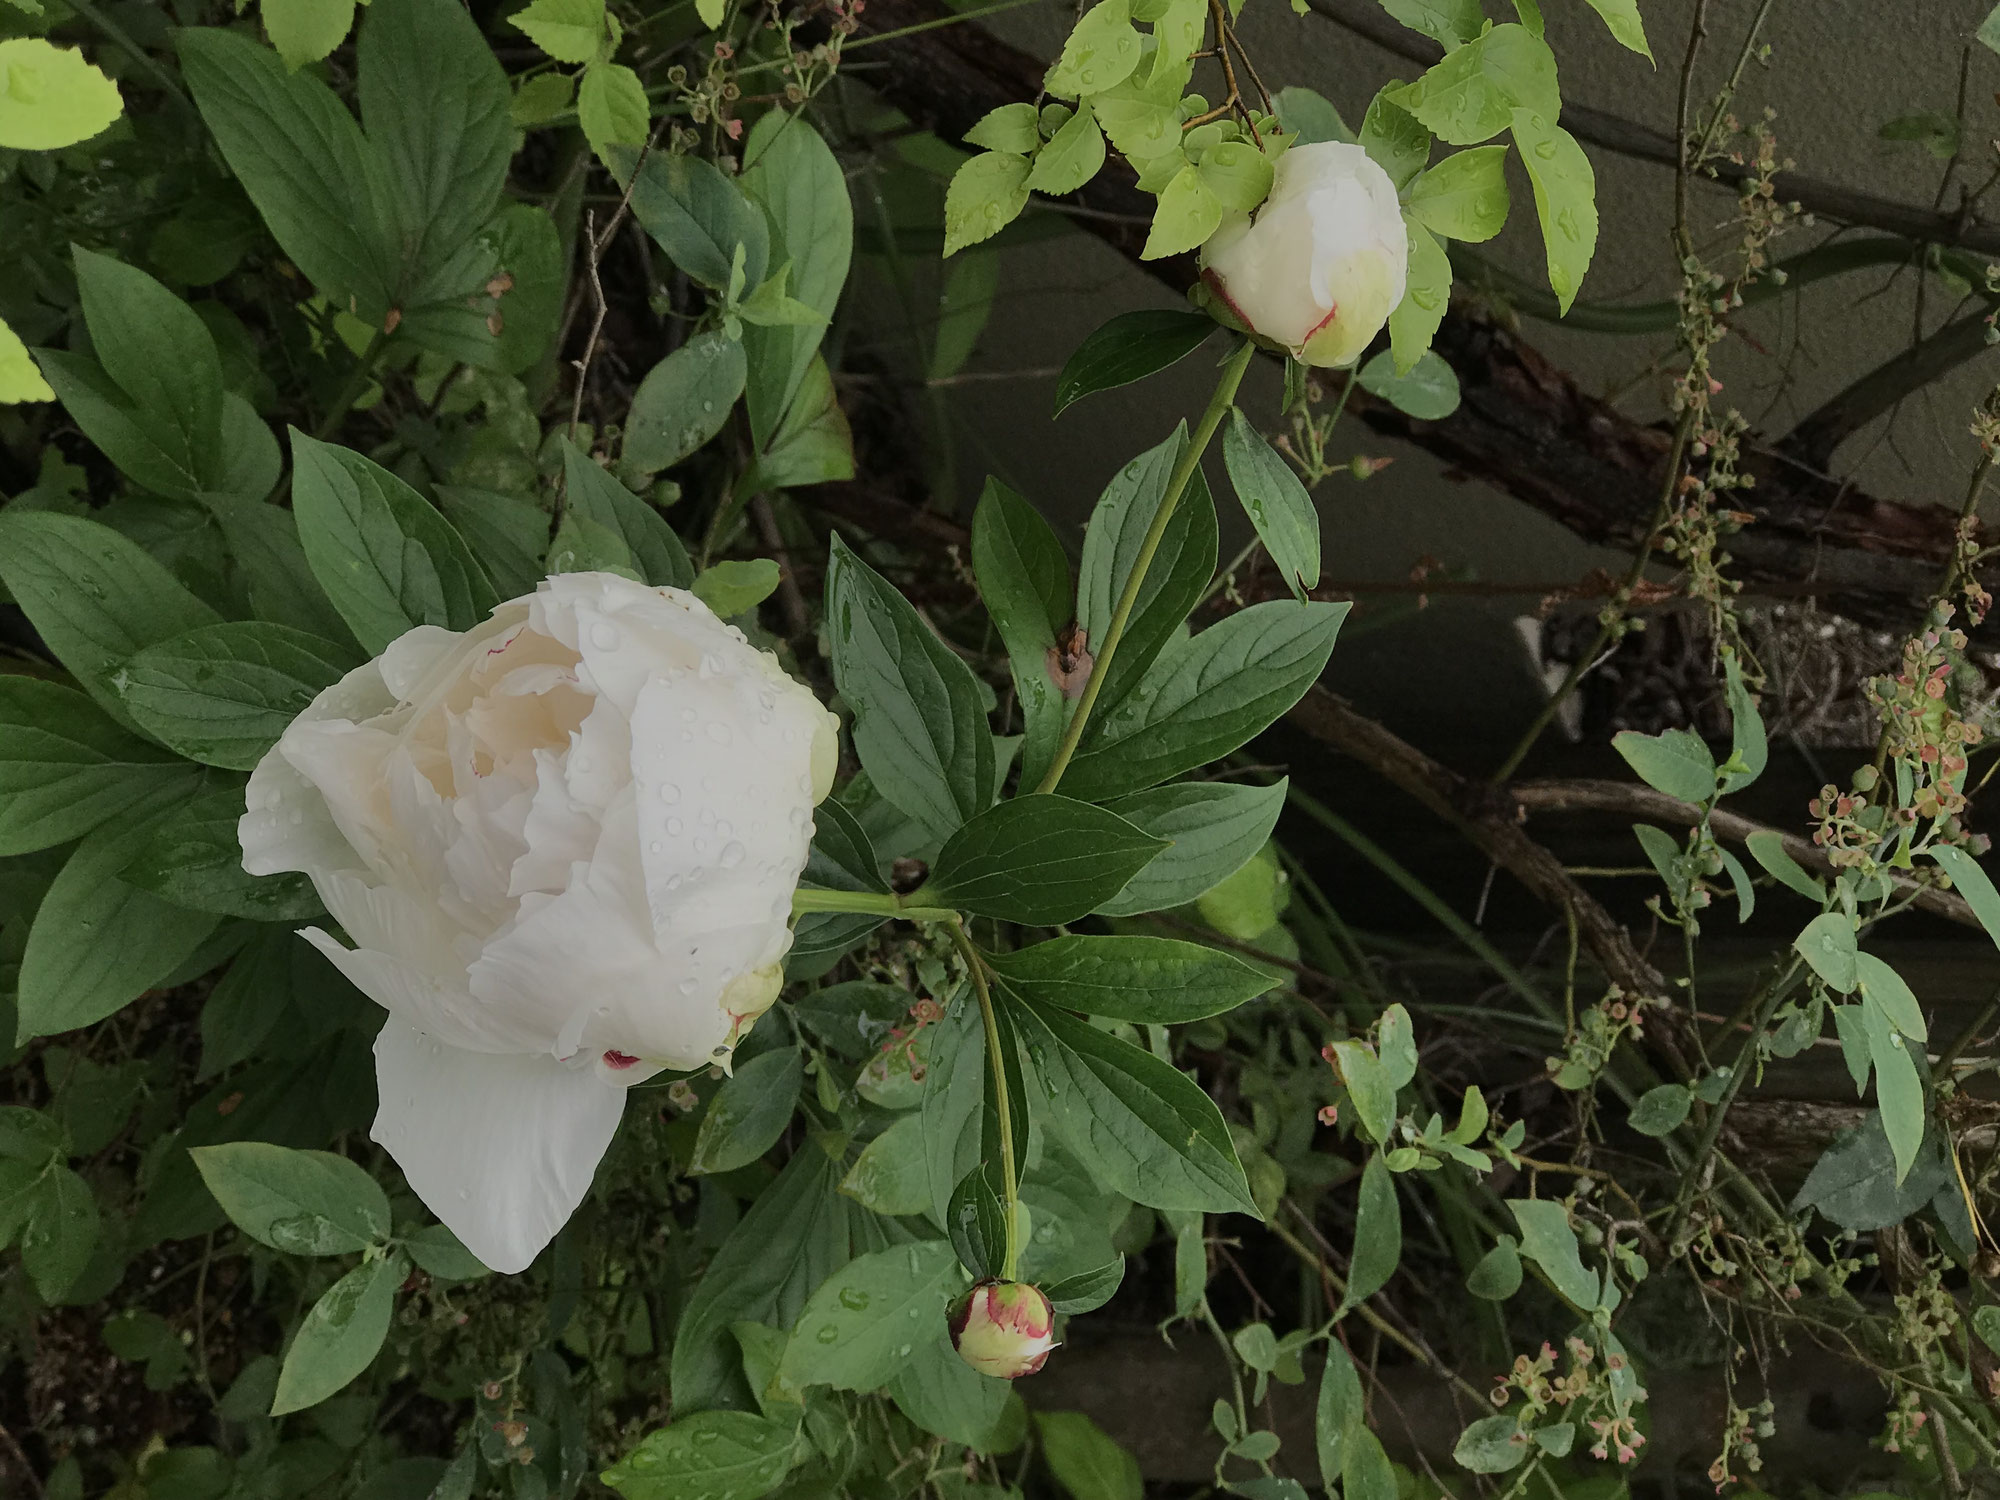 The peony has bloomed!